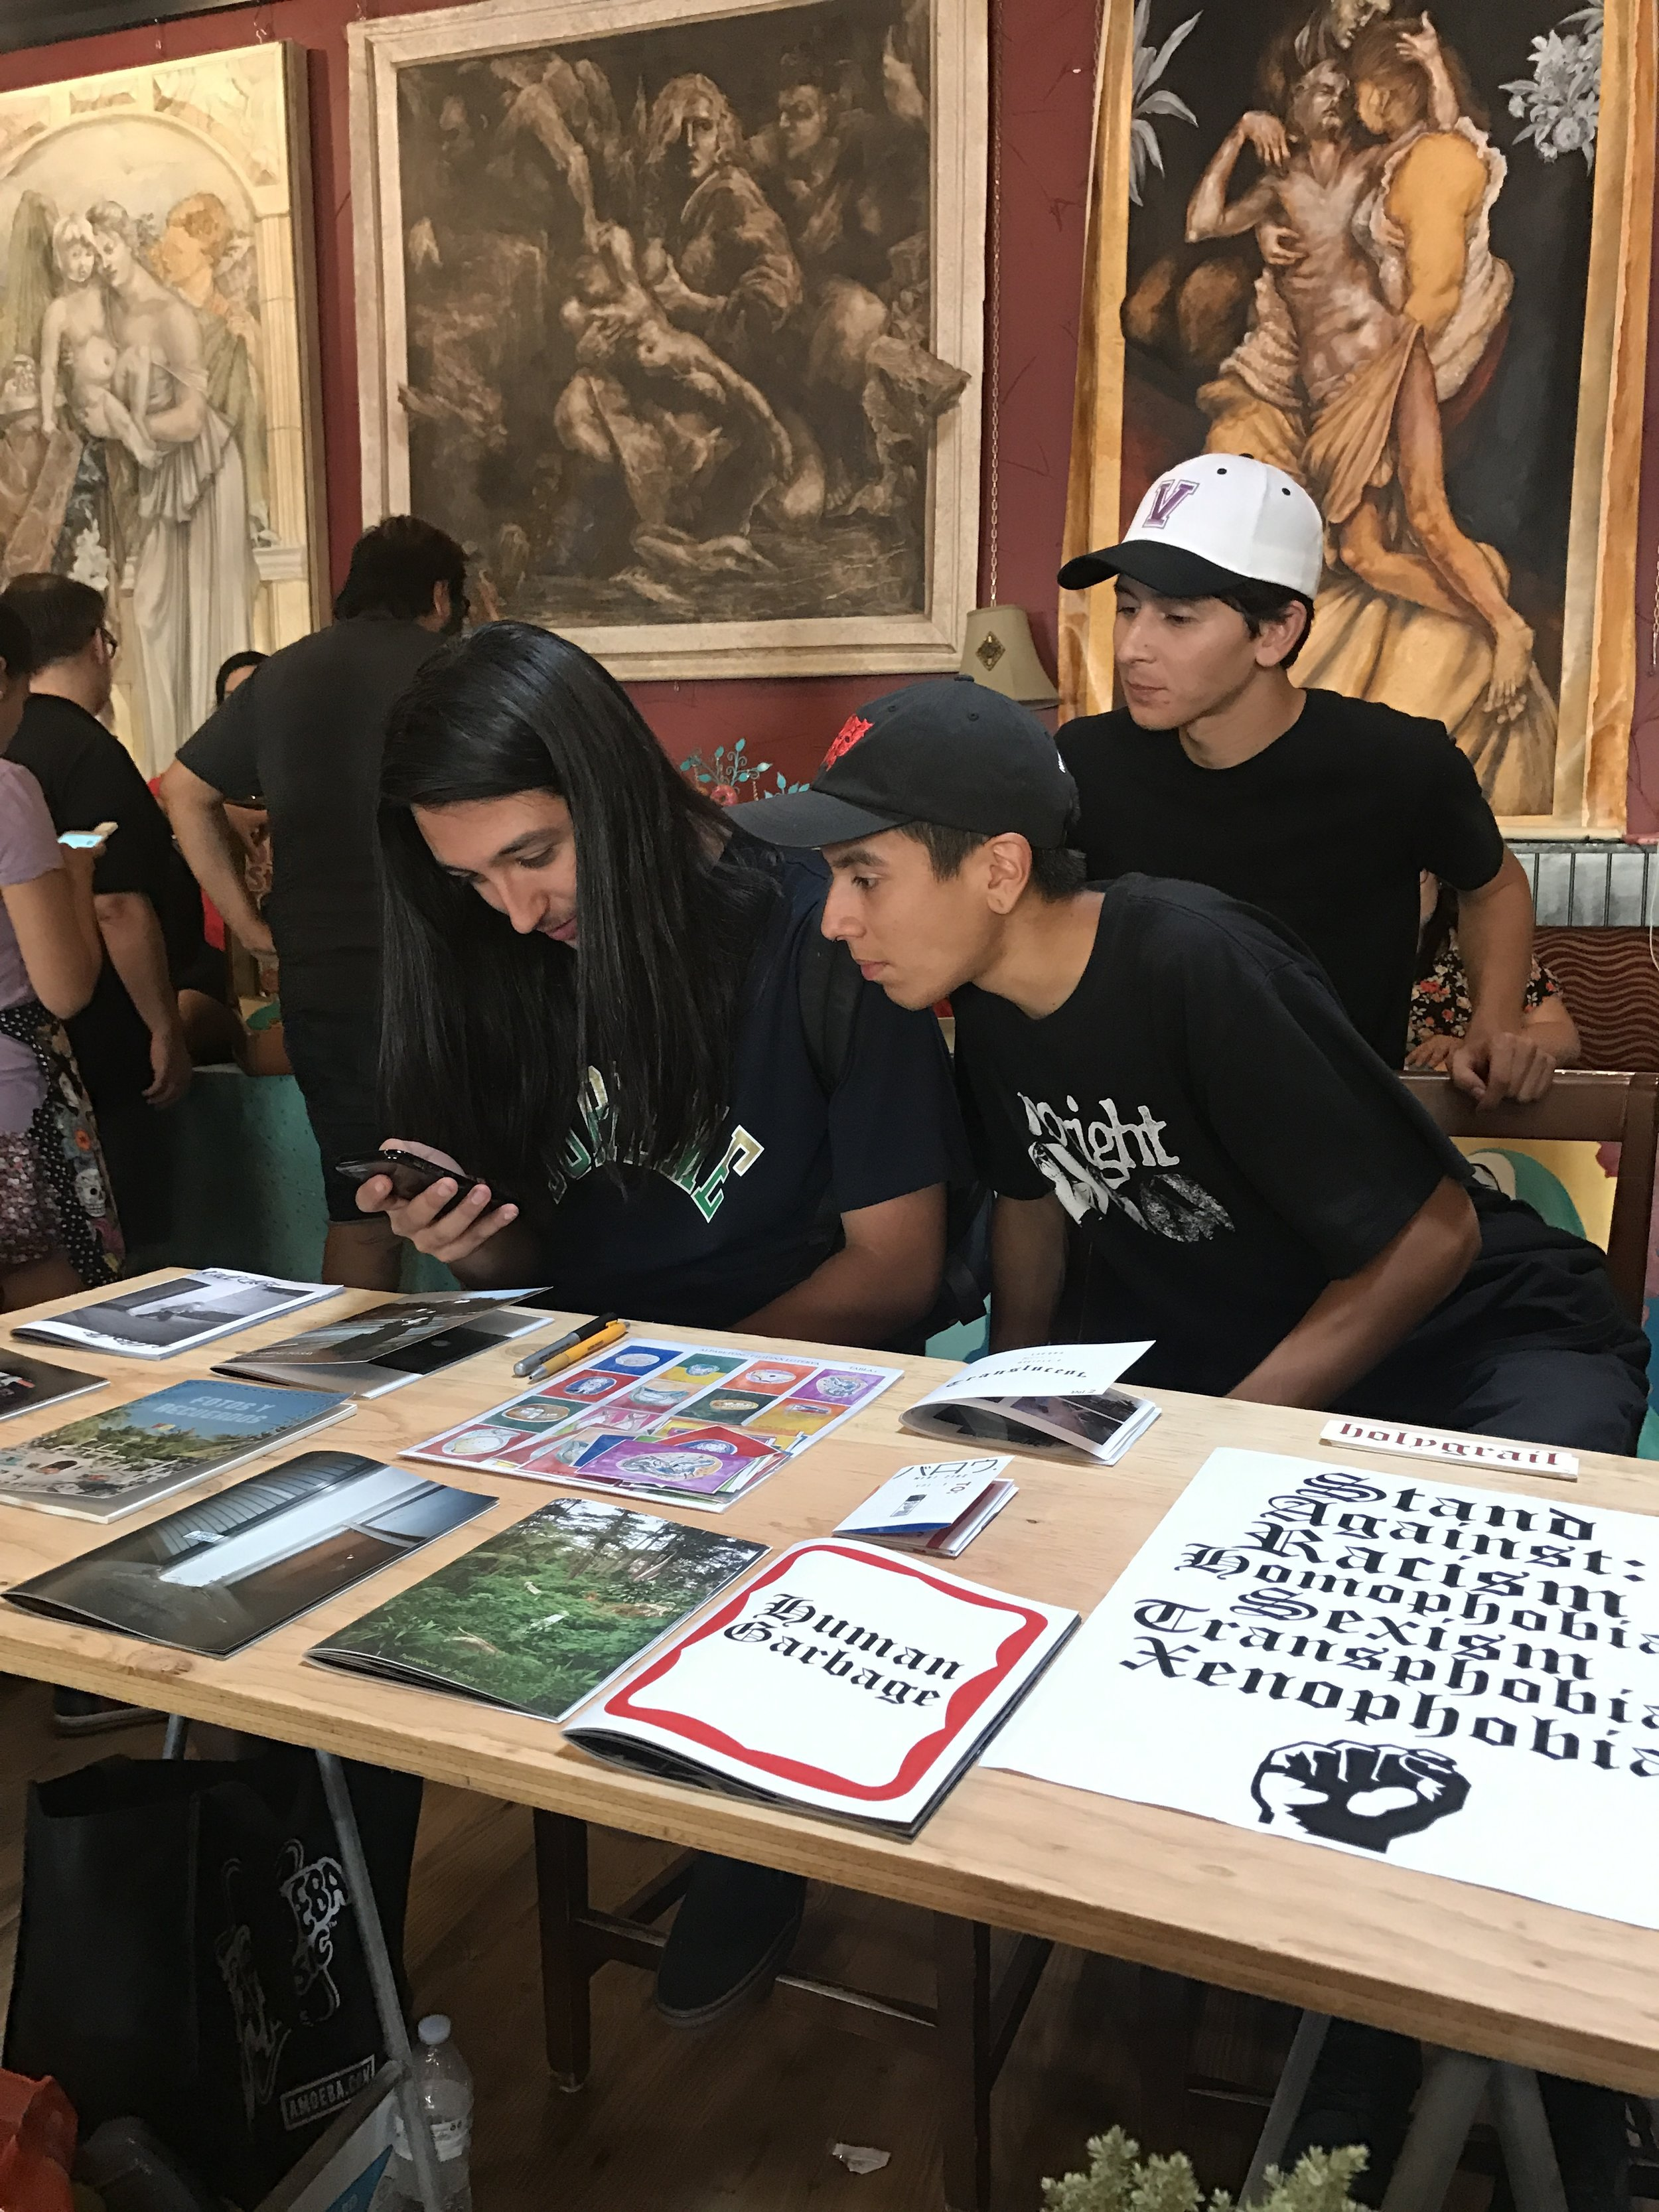 Fresno Zine Fair 2017 featuring our friend Alvino of Holygrail.